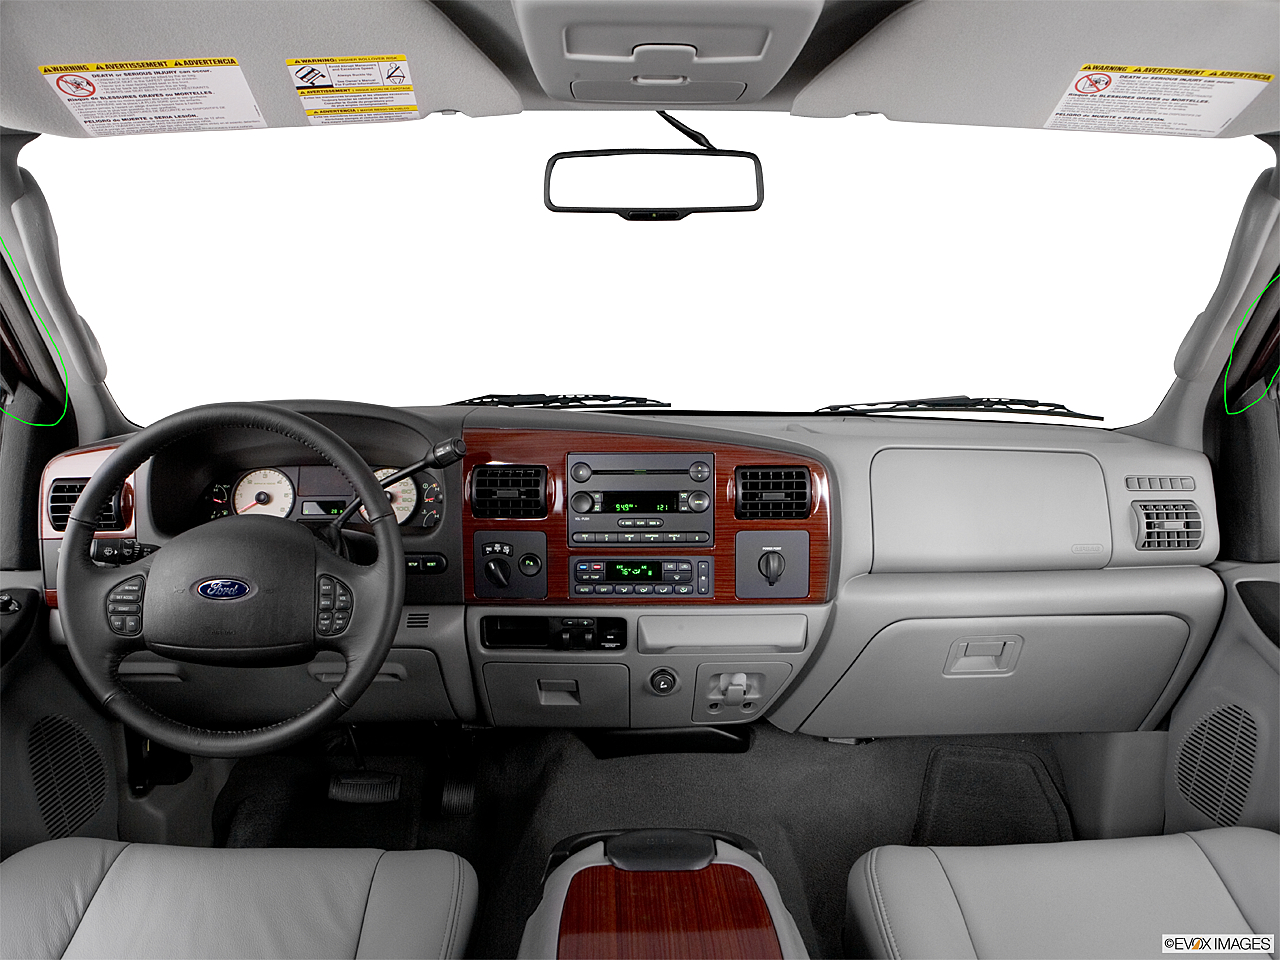 2006 Ford F-350 SD Lariat, centered wide dash shot